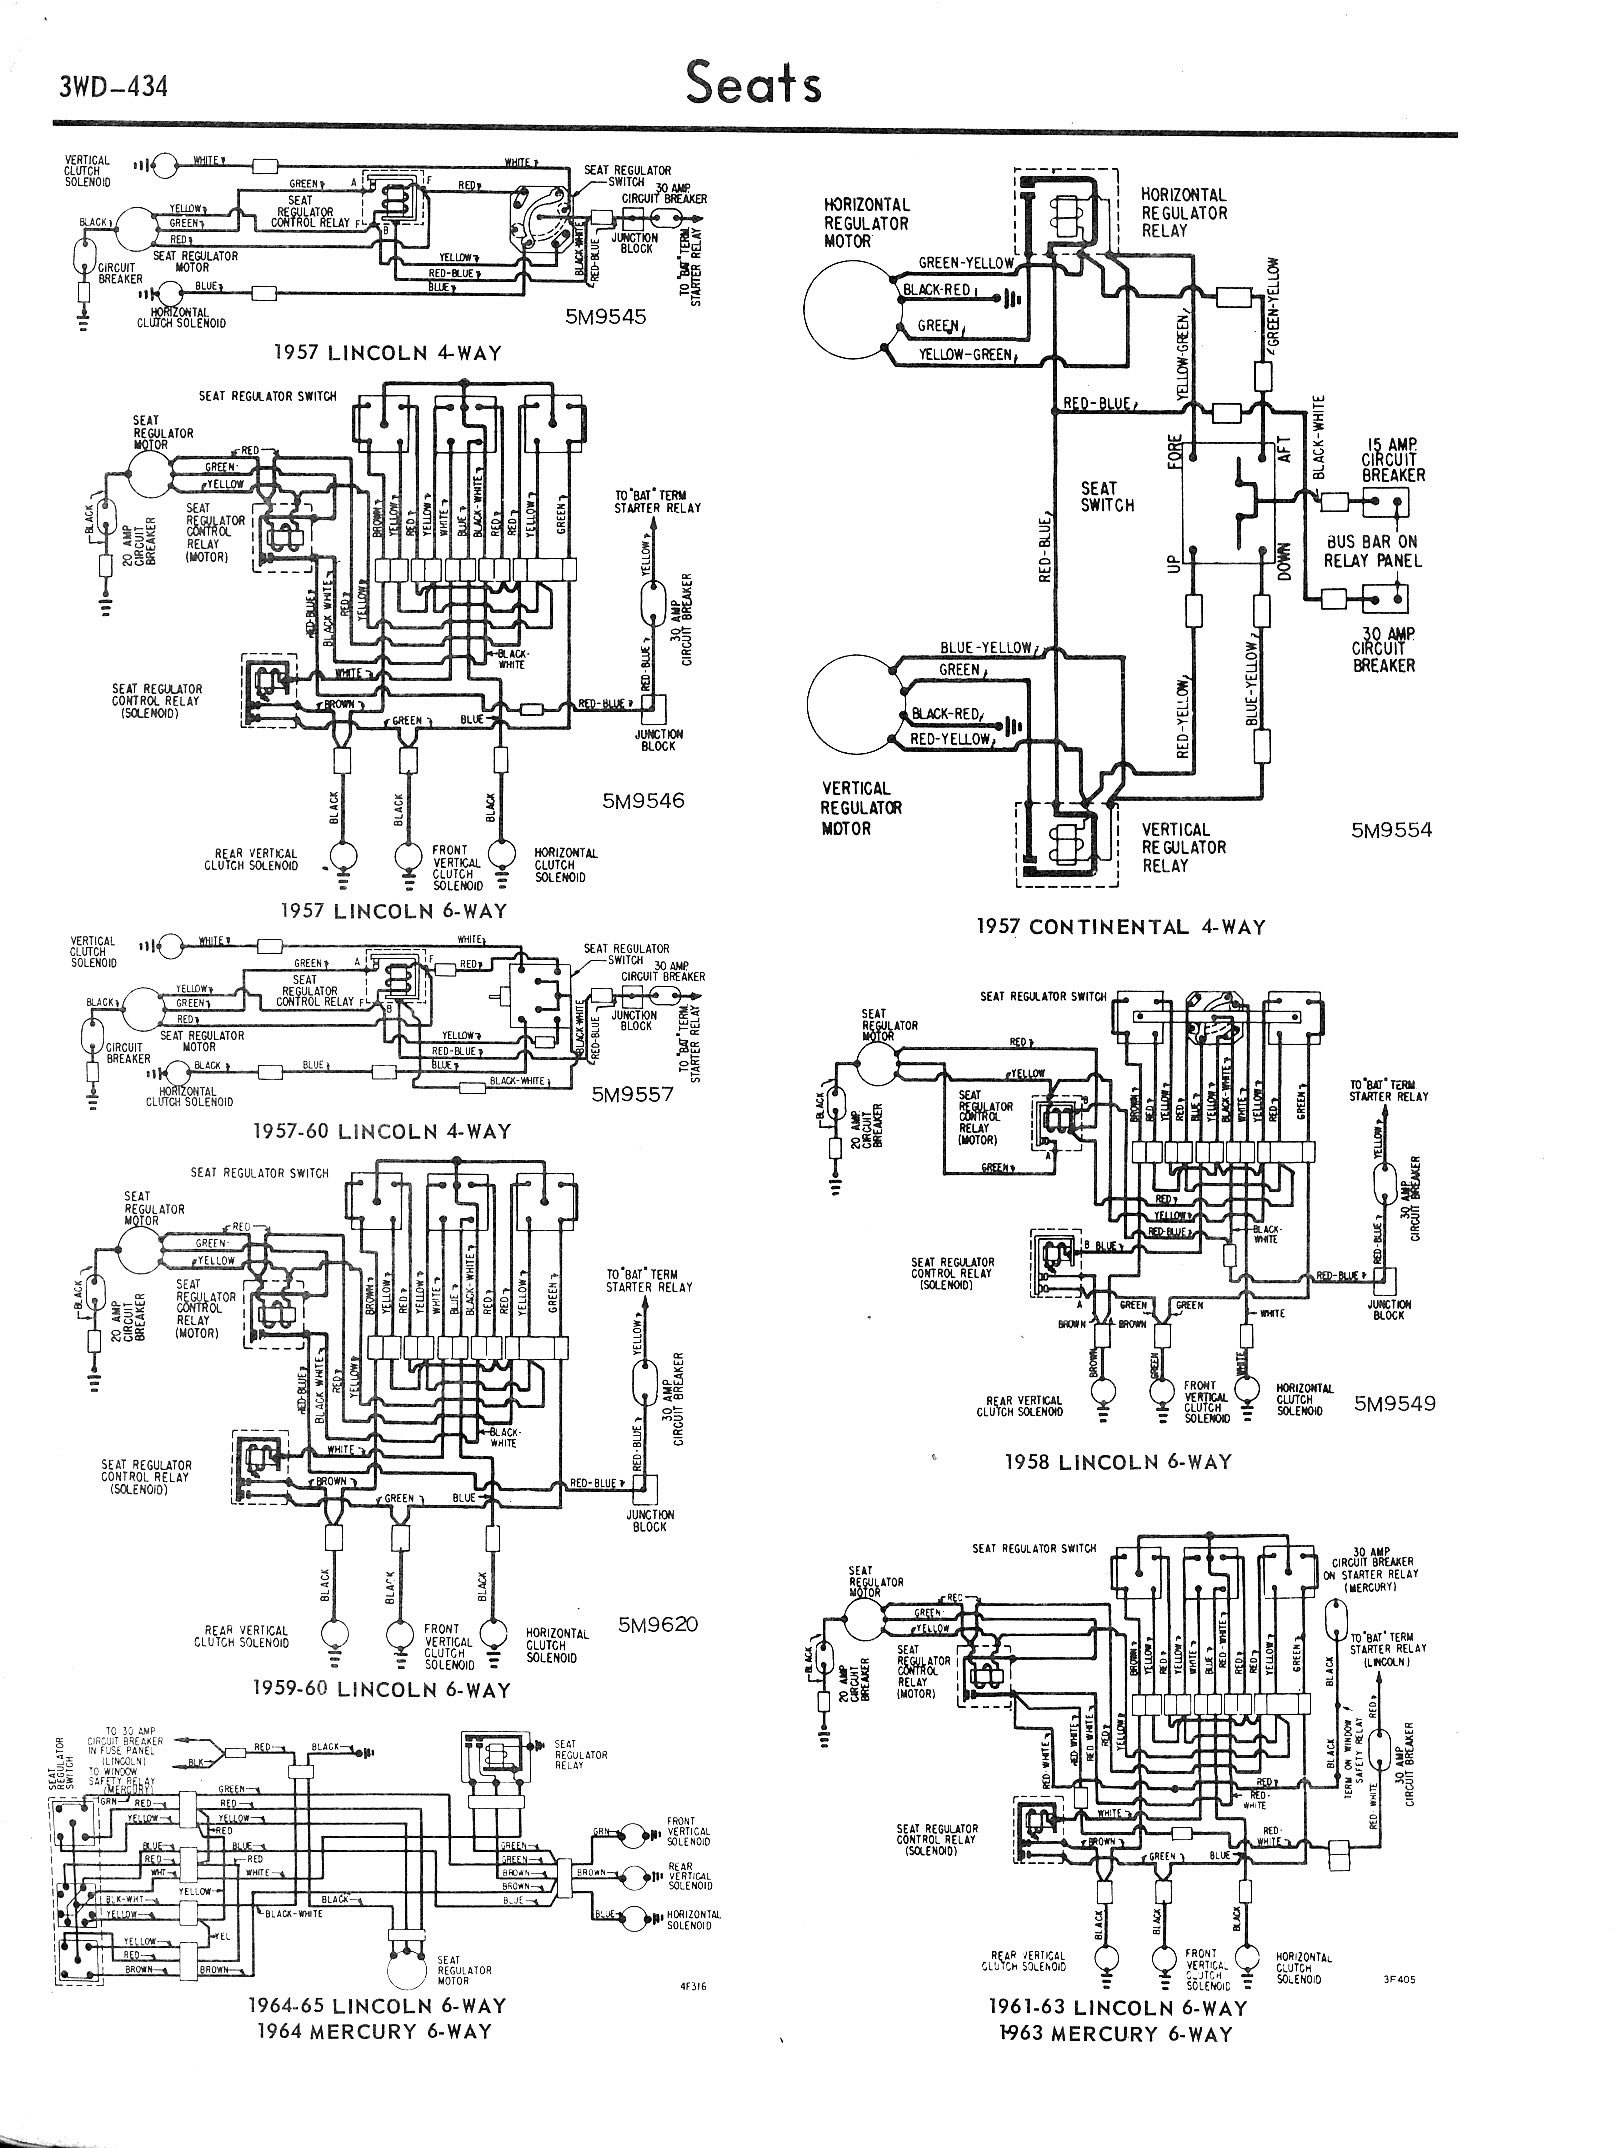 Wd Jpg on 1966 Mustang Wiring Harness